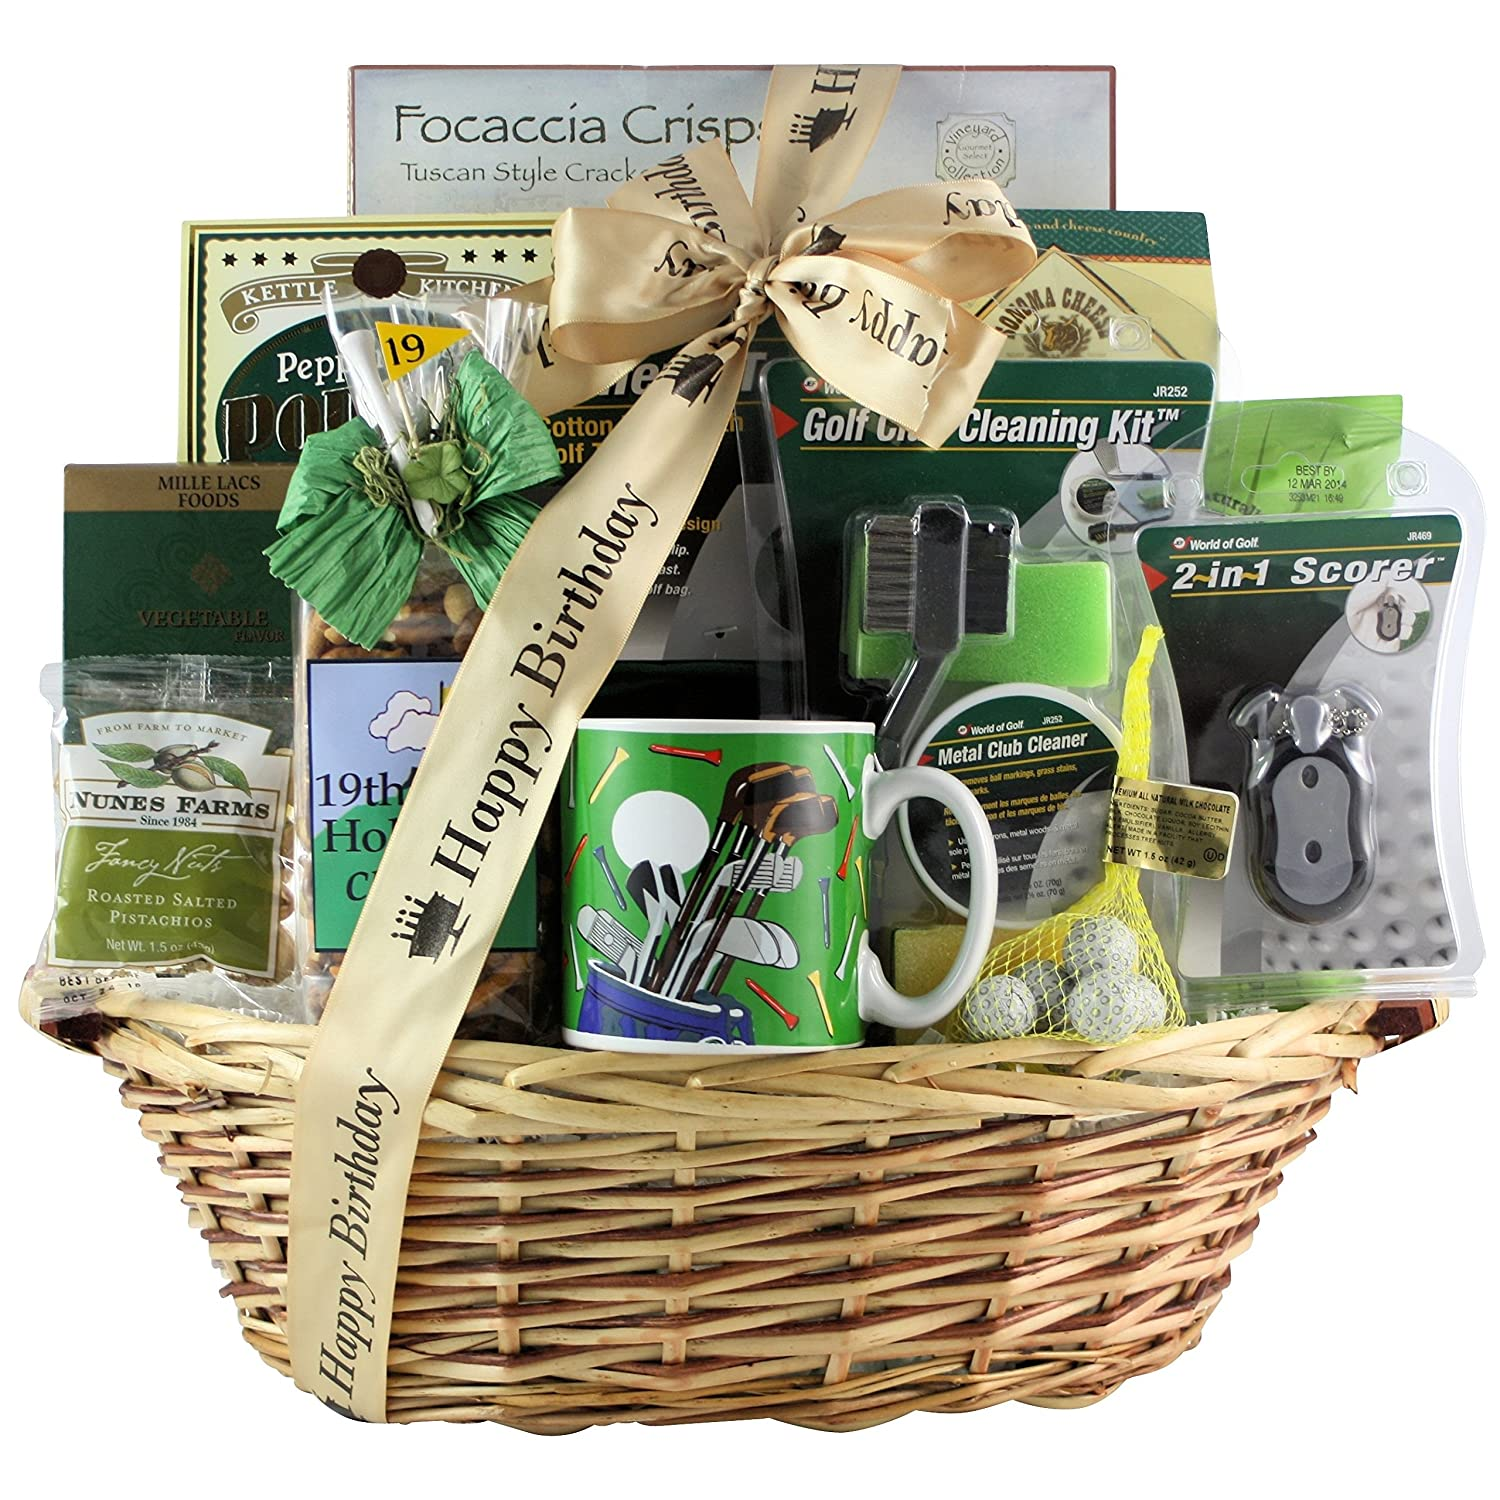 Amazon GreatArrivals Gift Baskets Golfers Delight Birthday Golf Basket 6 Pound Grocery Gourmet Food